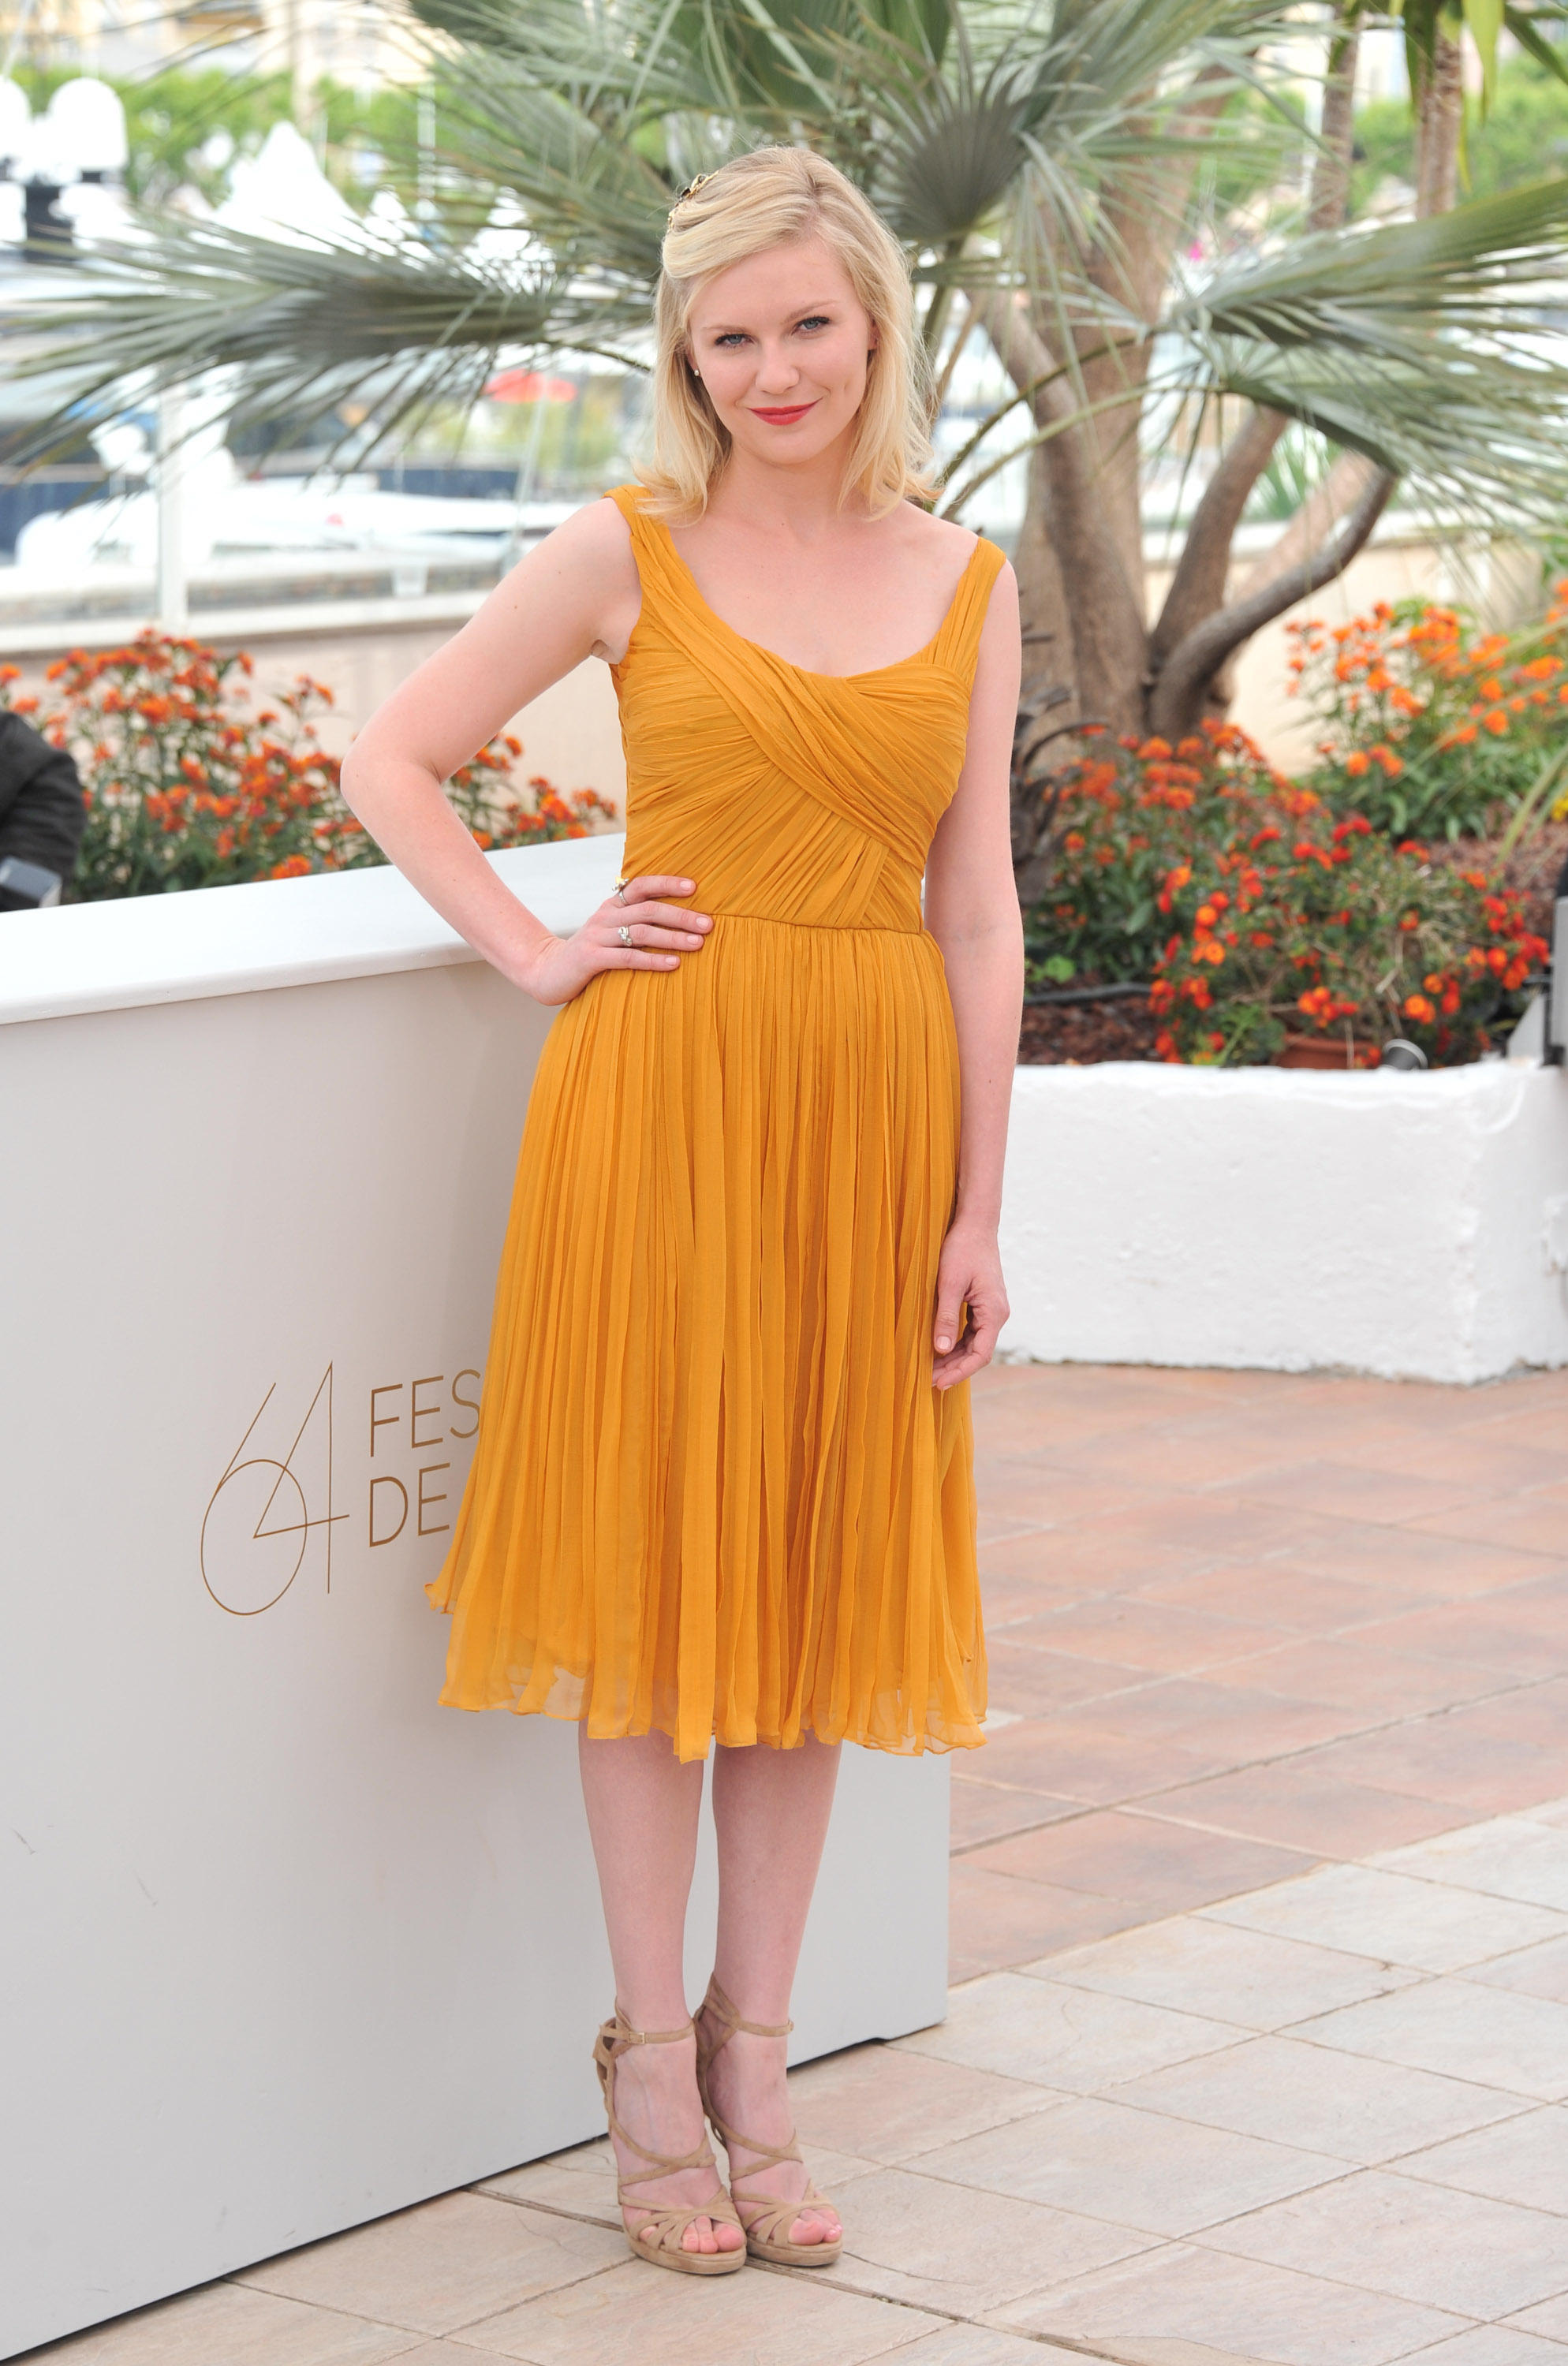 Red Carpet Style: Kirsten Dunst - Flare